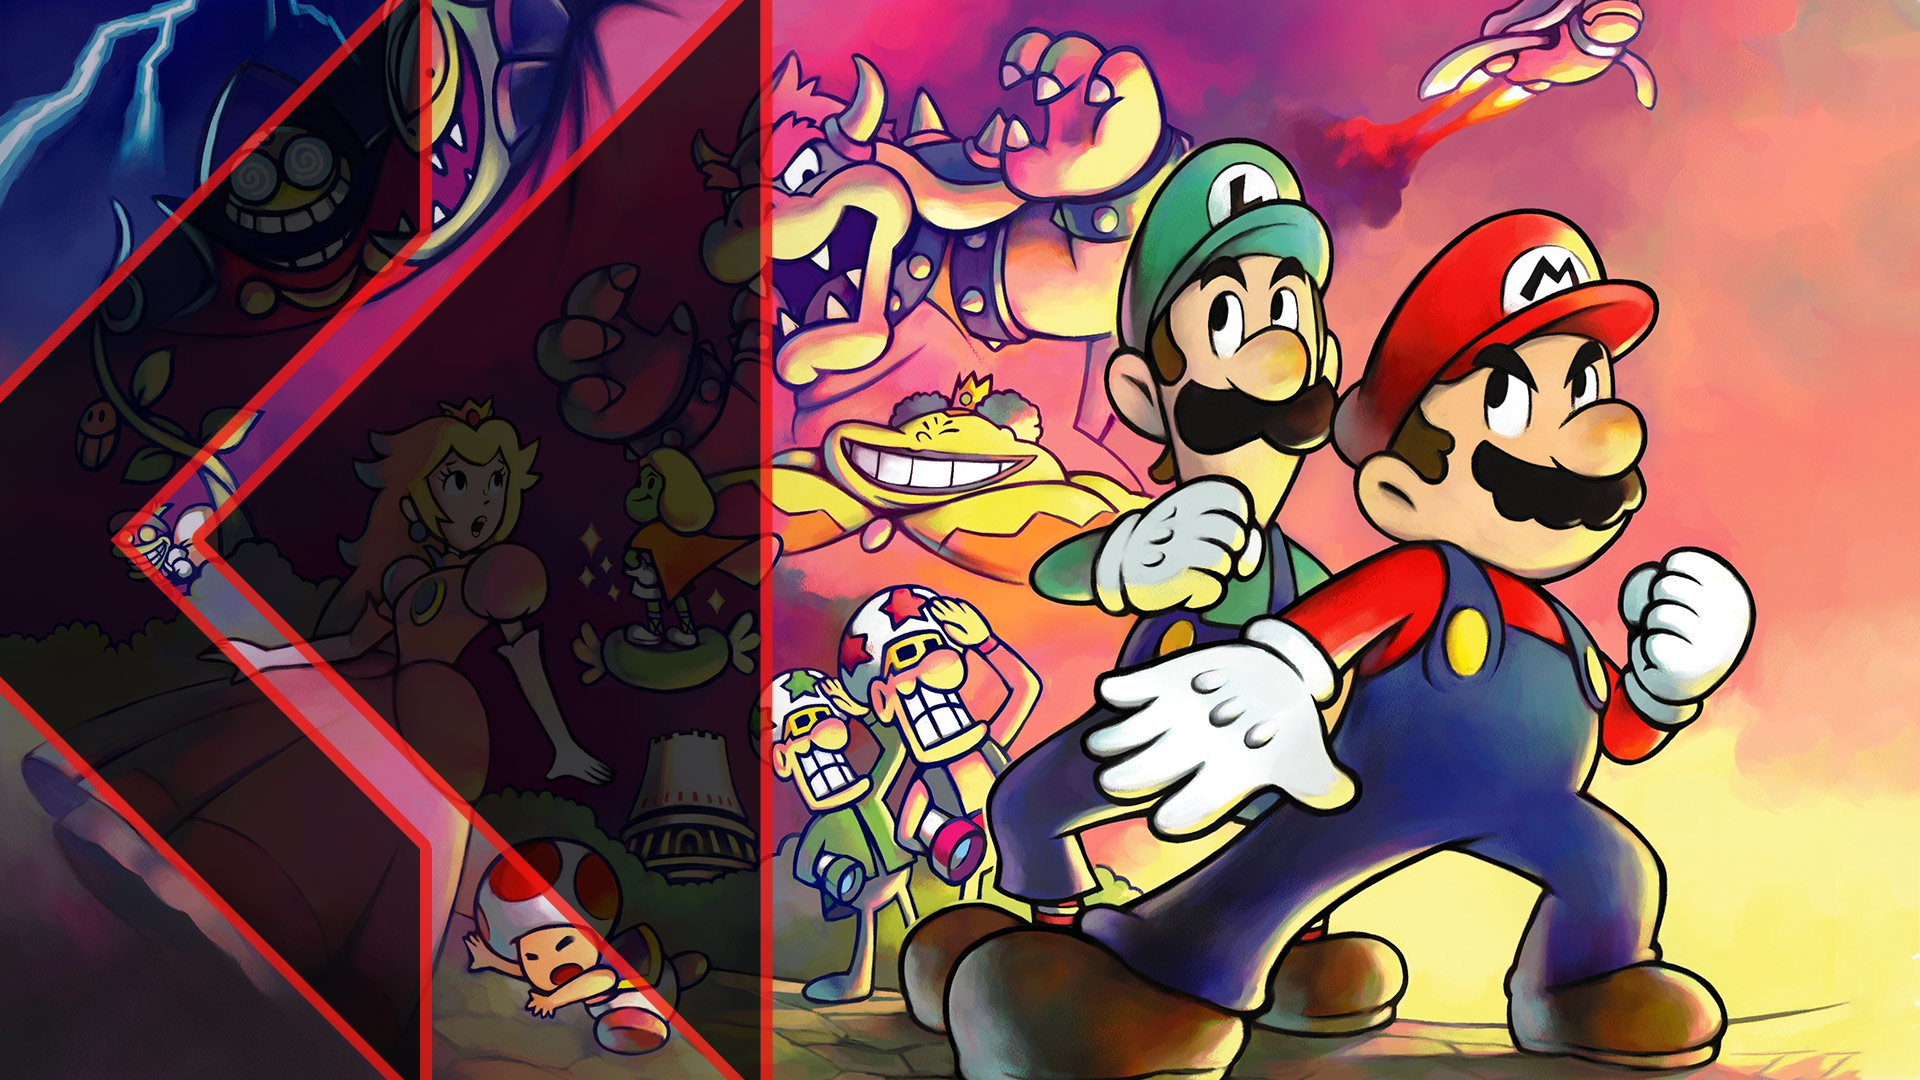 Mario & Luigi dramatically pose in front of a lineup of villains